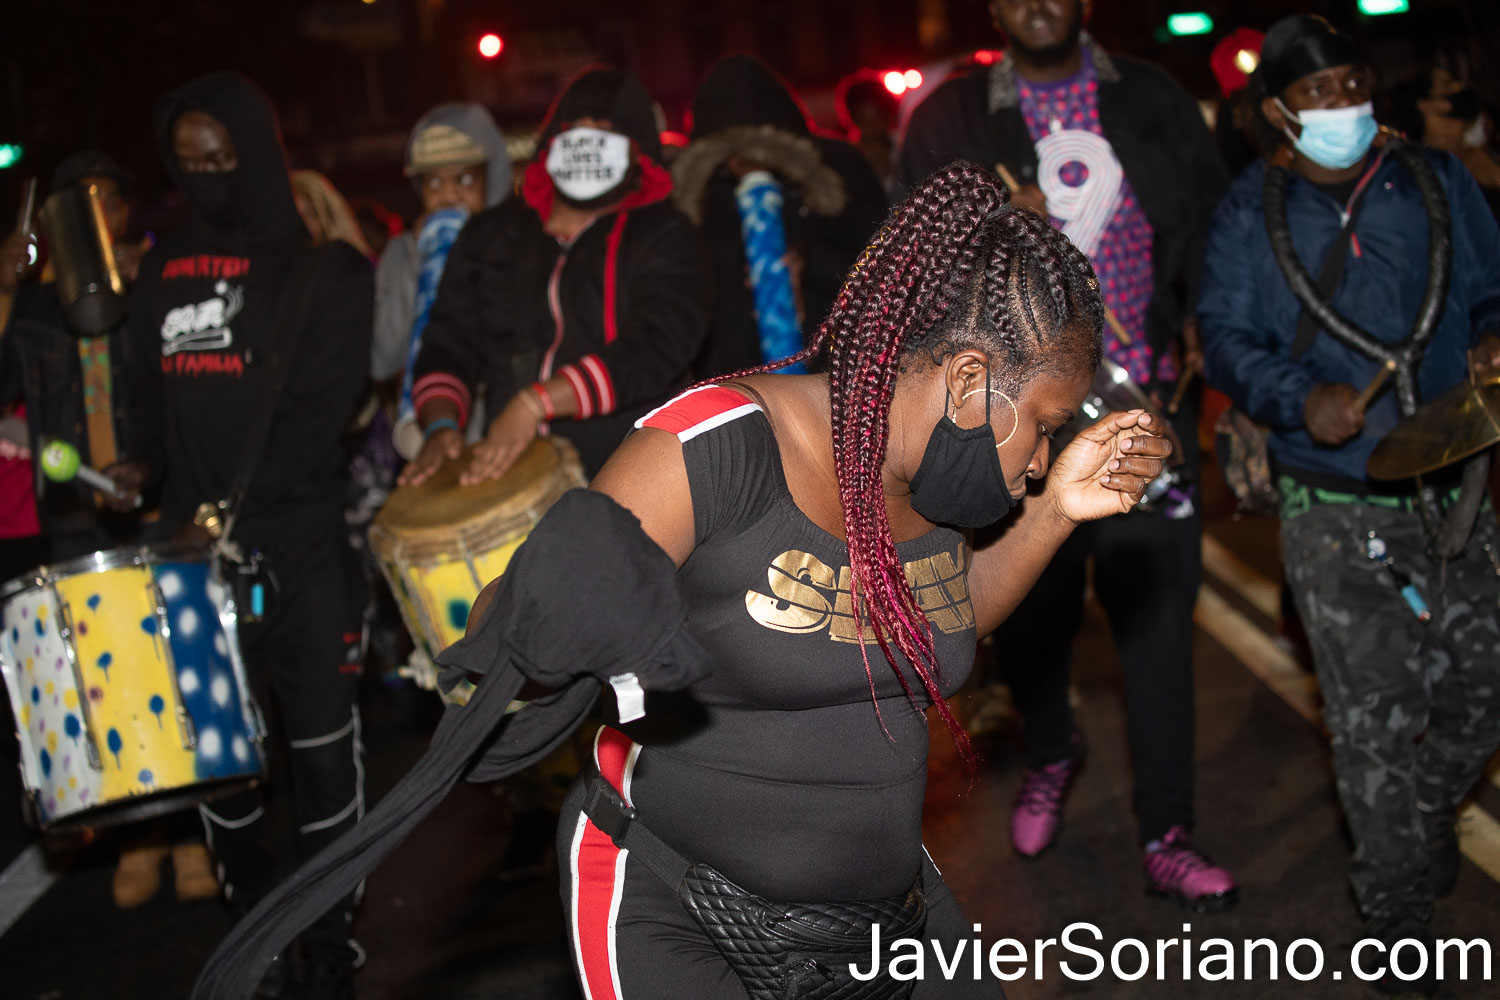 Saturday, November 7, 2020. Brooklyn, New York City - People from Haiti in Flatbush took to the streets to celebrate with music that Joe Biden was declared the winner in the presidential election on Tuesday, November 3, 2020. Photo by Javier Soriano/www.JavierSoriano.com